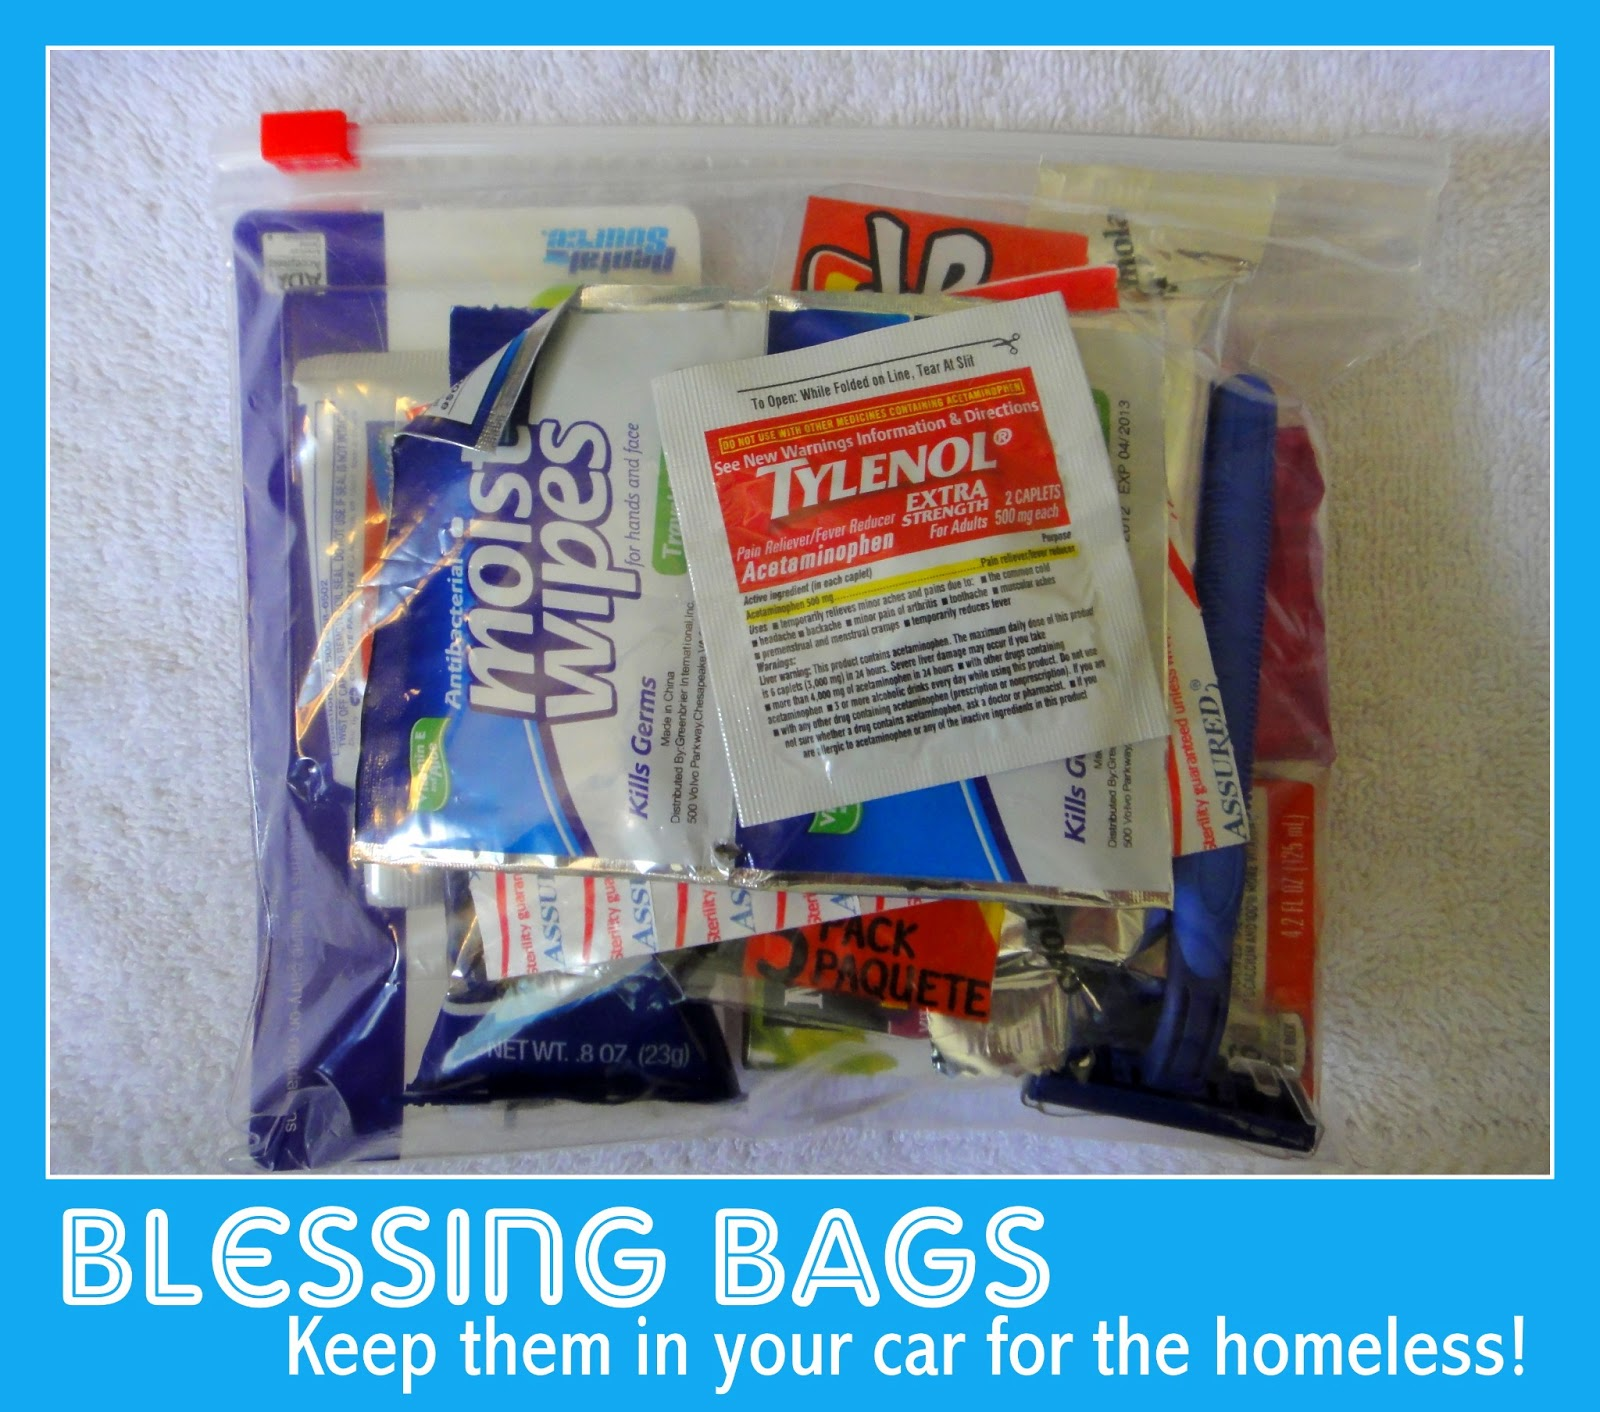 Keep These Blessing Bags On Hand Or In Your Car For Passing Along To Someone Need We Live A Suburb Of Detroit Quite Frequently Find Ourselves